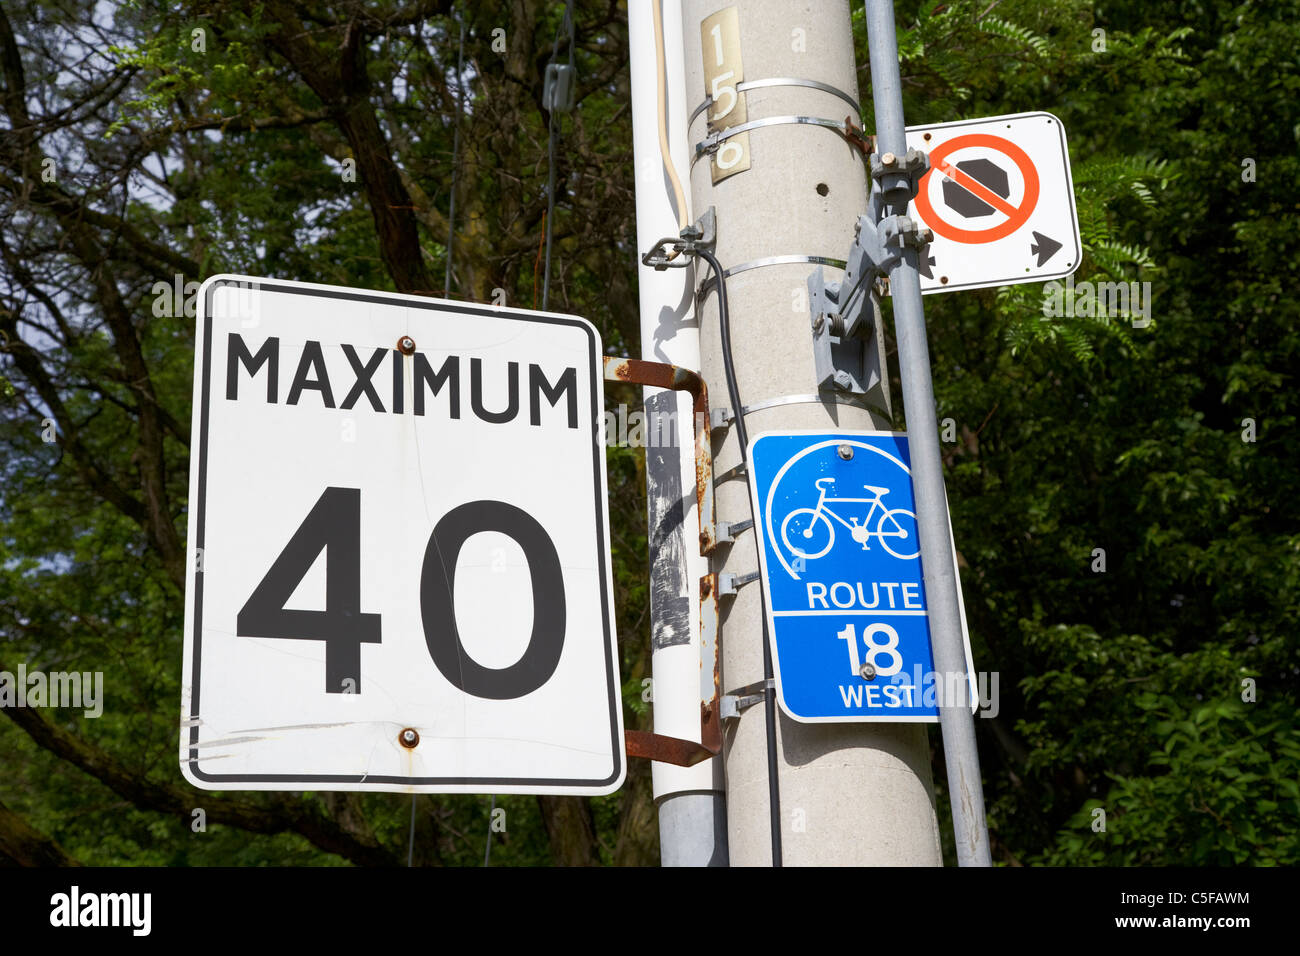 maximum 40 speed limit sign on cycle route toronto ontario canada - Stock Image